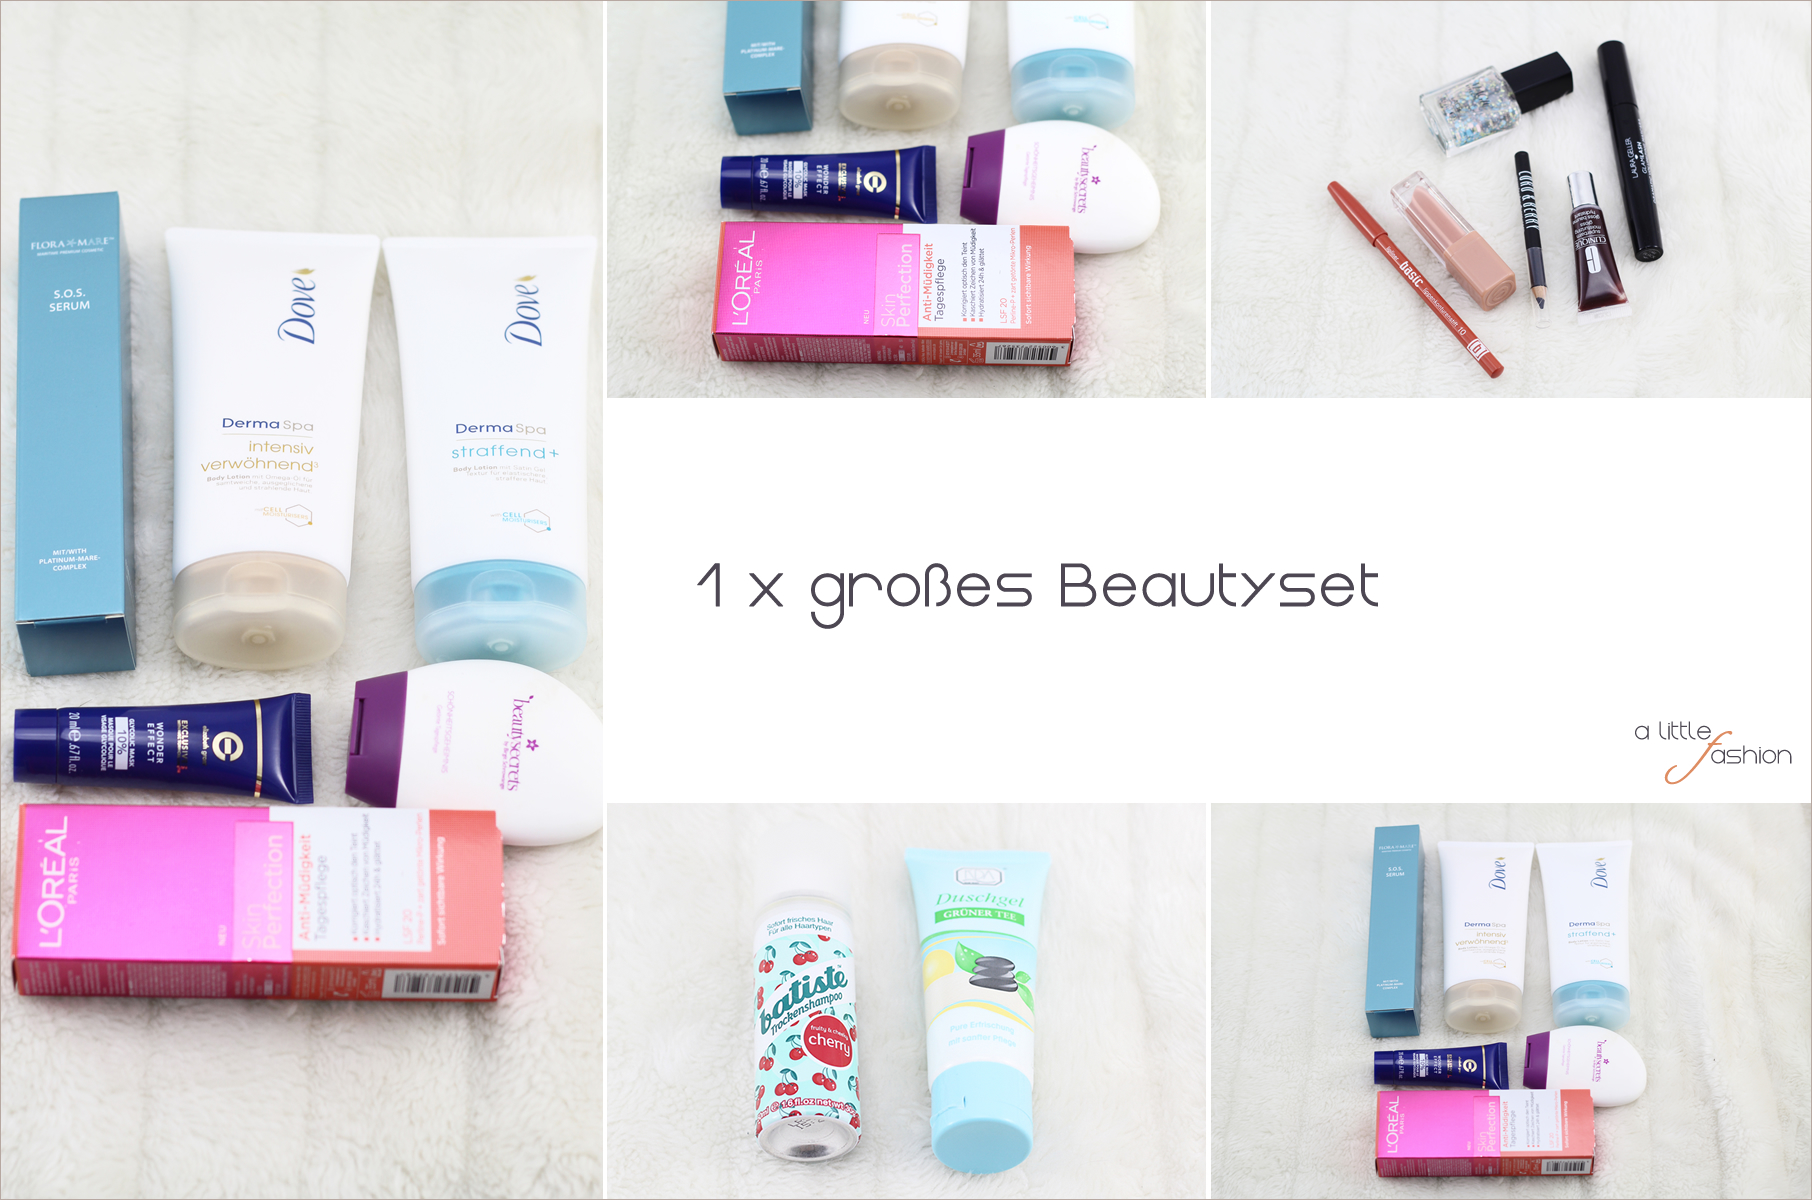 3 Jahre A Little Fashion! Gewinnt ein großes Beauty-Set | https://www.filizity.com/beauty/alittlefashion-geburtstagssause-giveaway-6